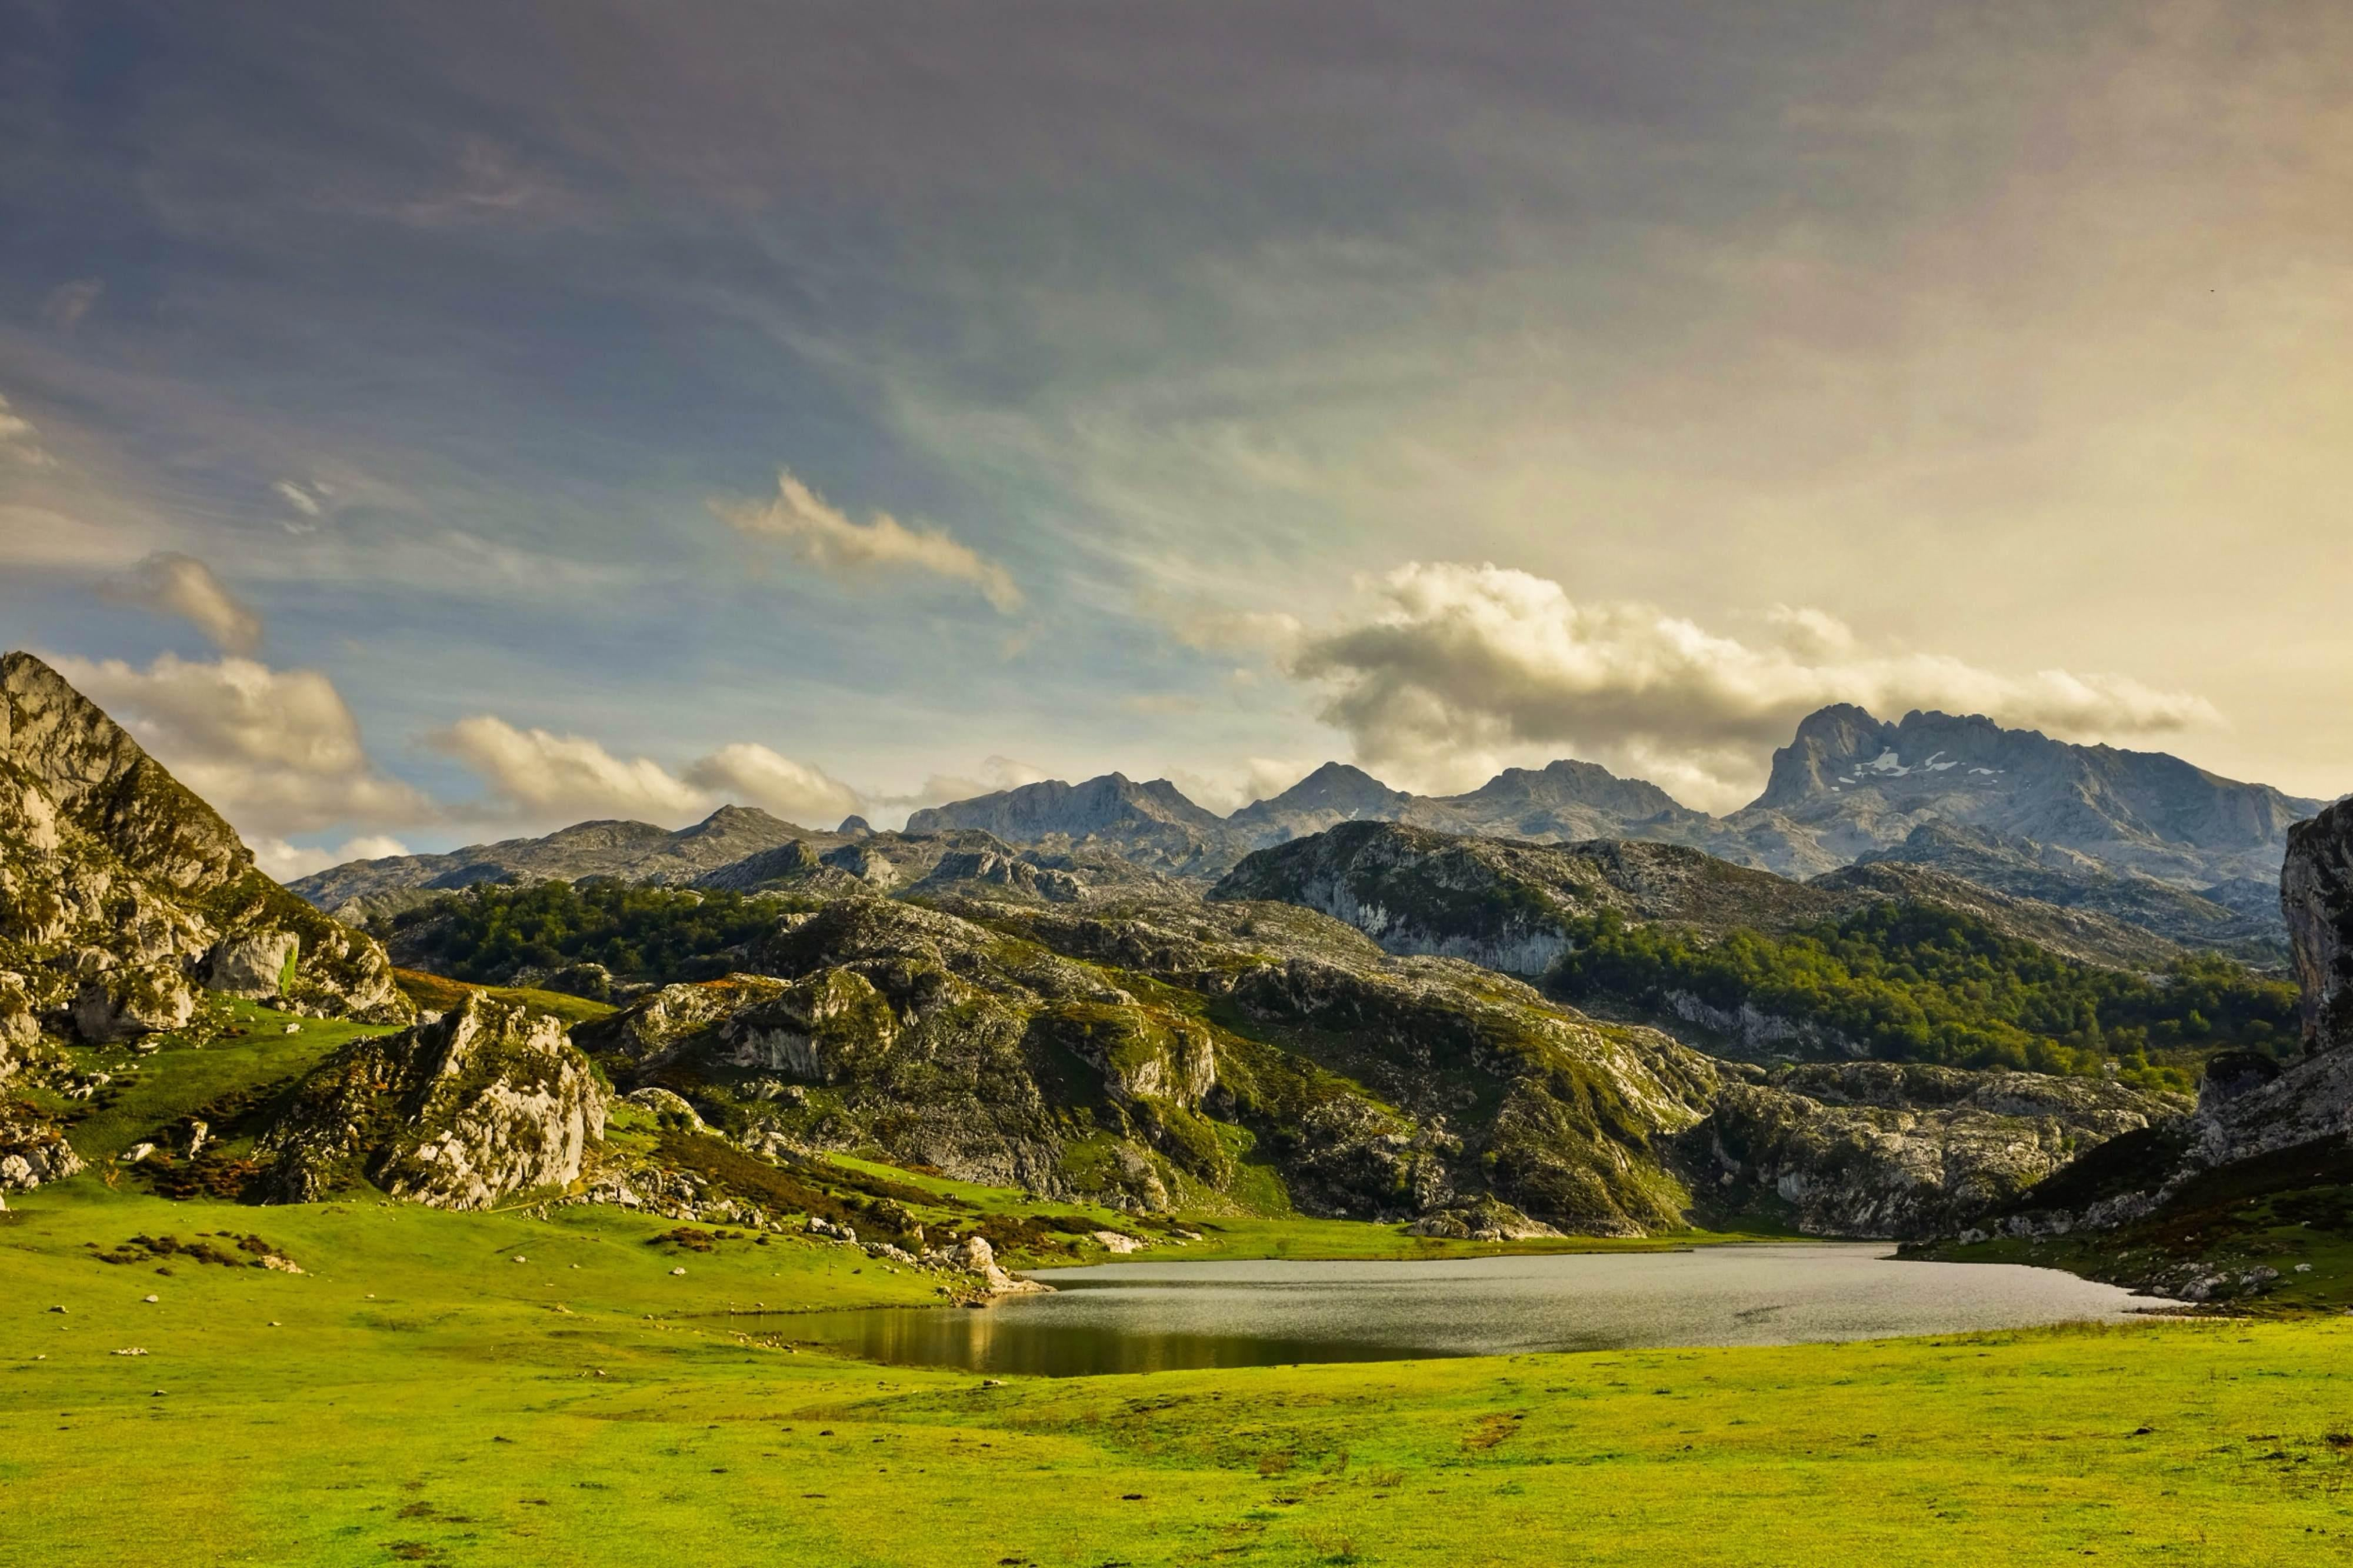 Grassland in The Lakes of Covadonga - Enol and Ercina lakes